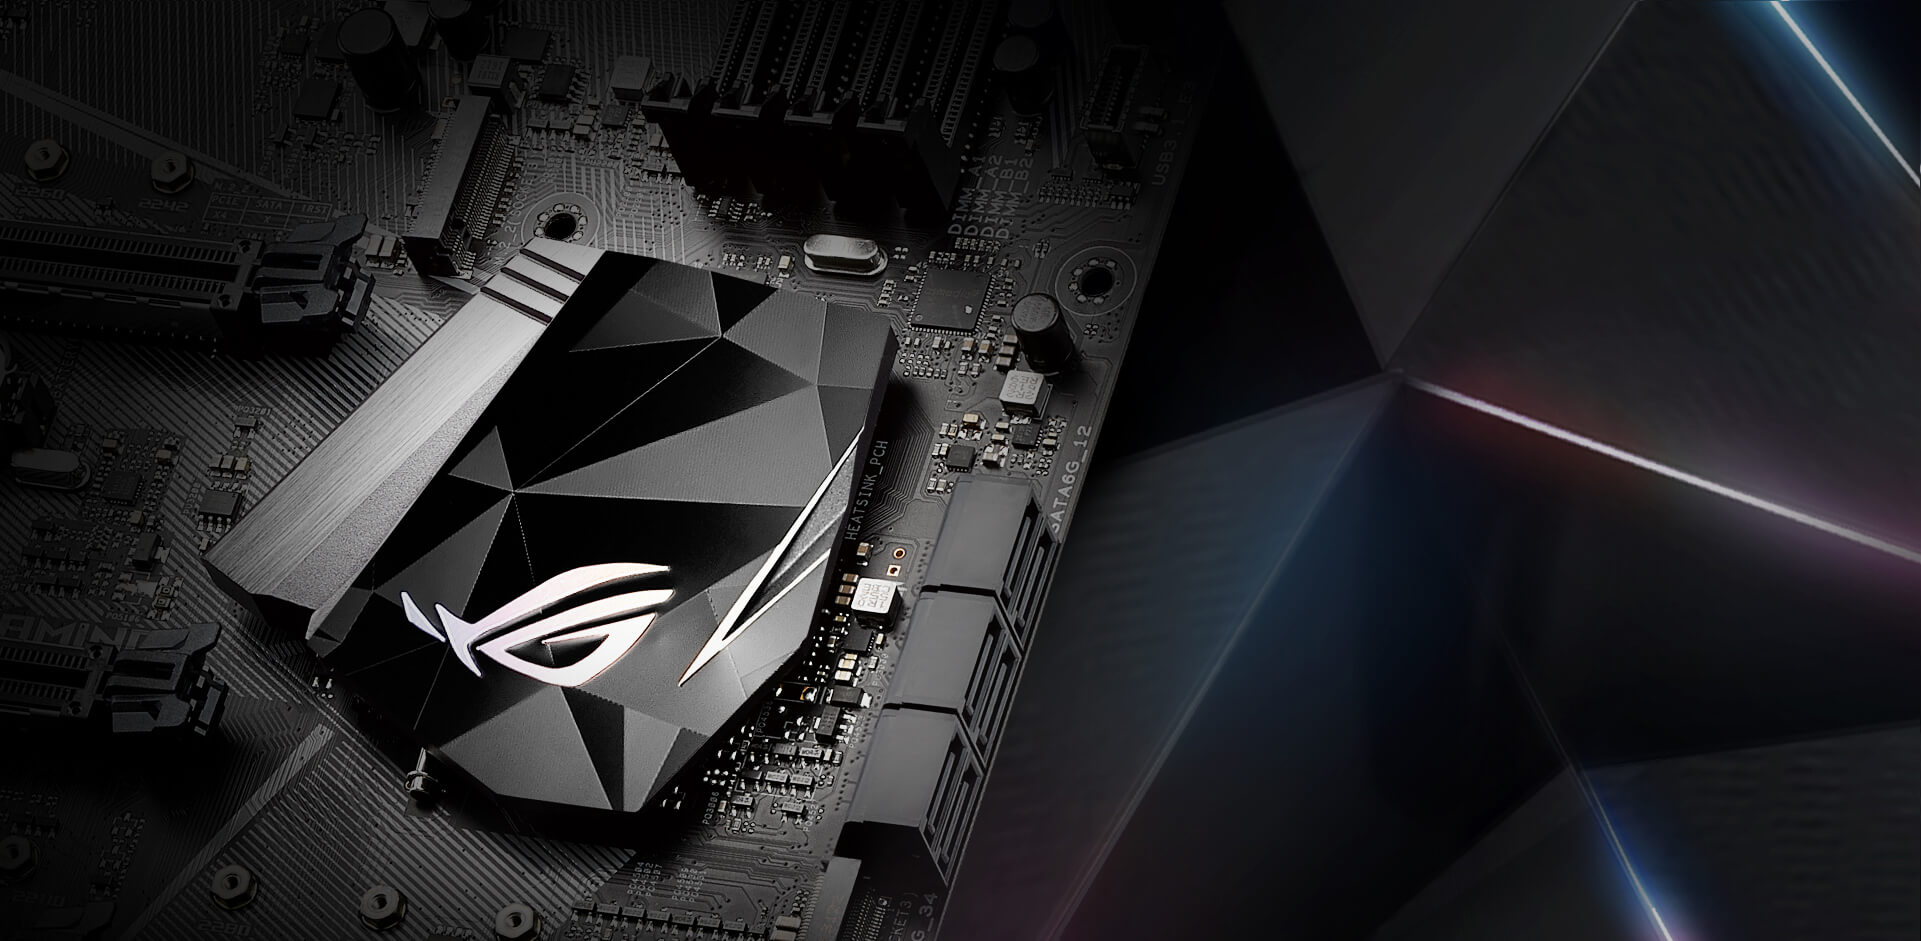 Rog Strix Z270e Gaming Republic Of Gamers Asus Usa Correspondence The Pins On Hdmi To Dvid Cable Badge Reflective Polychrome Finish Stands Out Against Diamond Cut Metal Nameplate